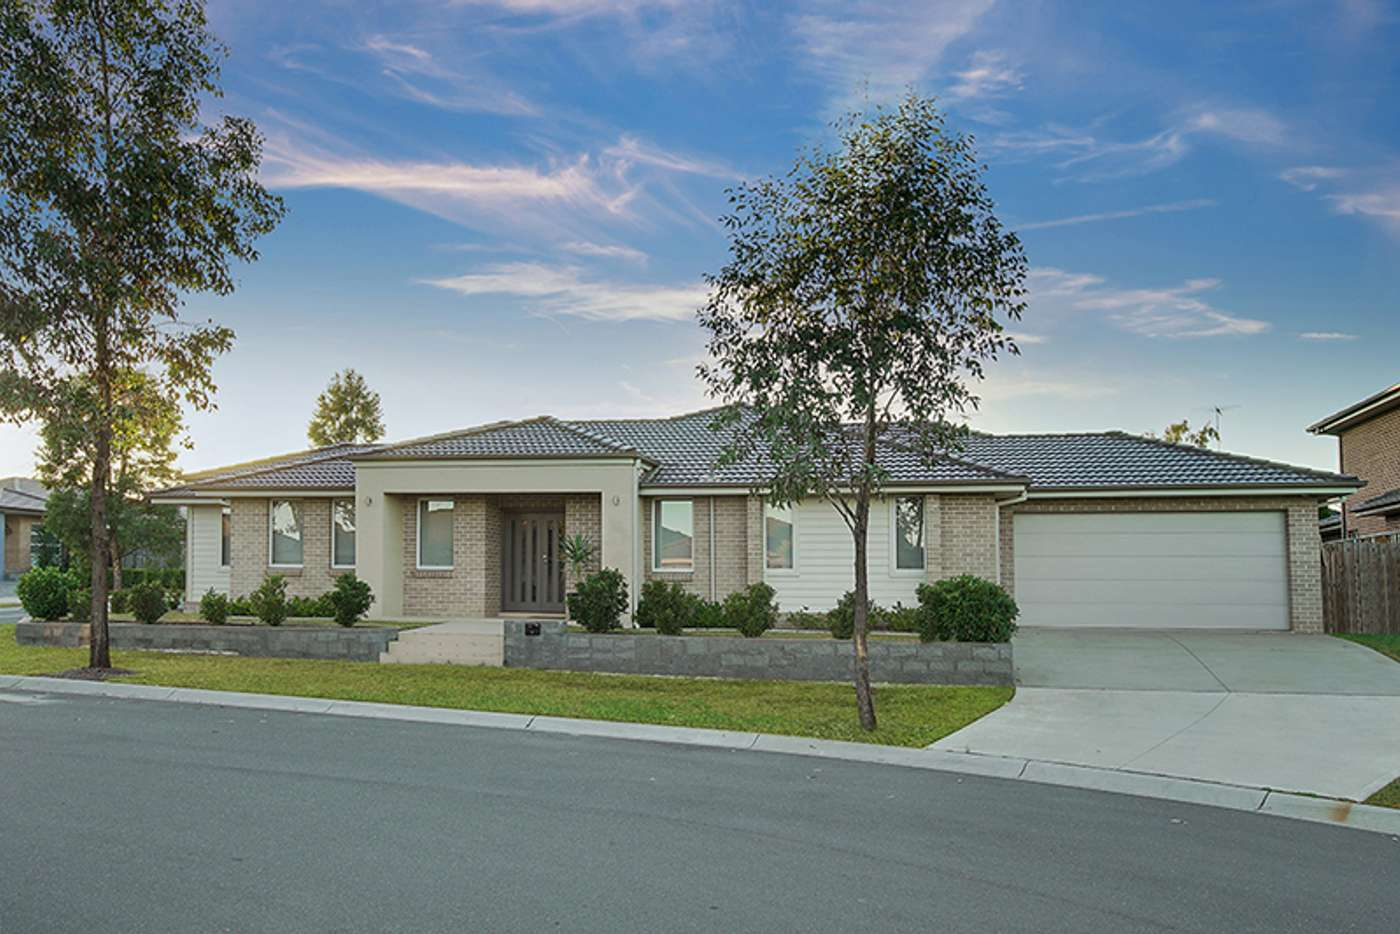 Main view of Homely house listing, 5 Ripple Crescent, The Ponds NSW 2769